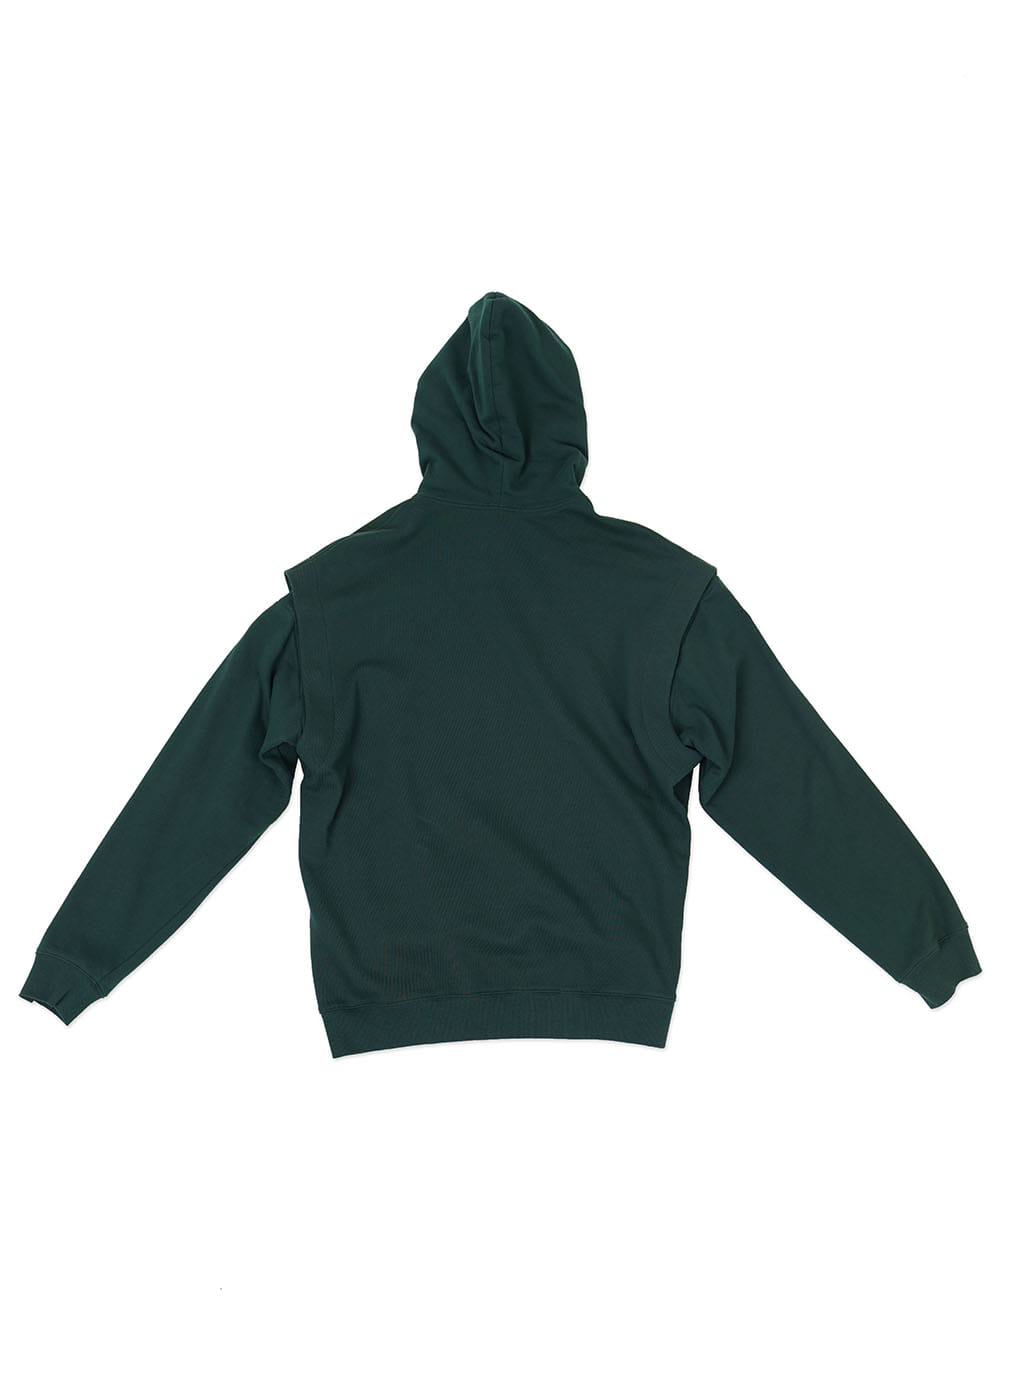 Dark Green Detachable Sleeve Hoodie Sweatshirt